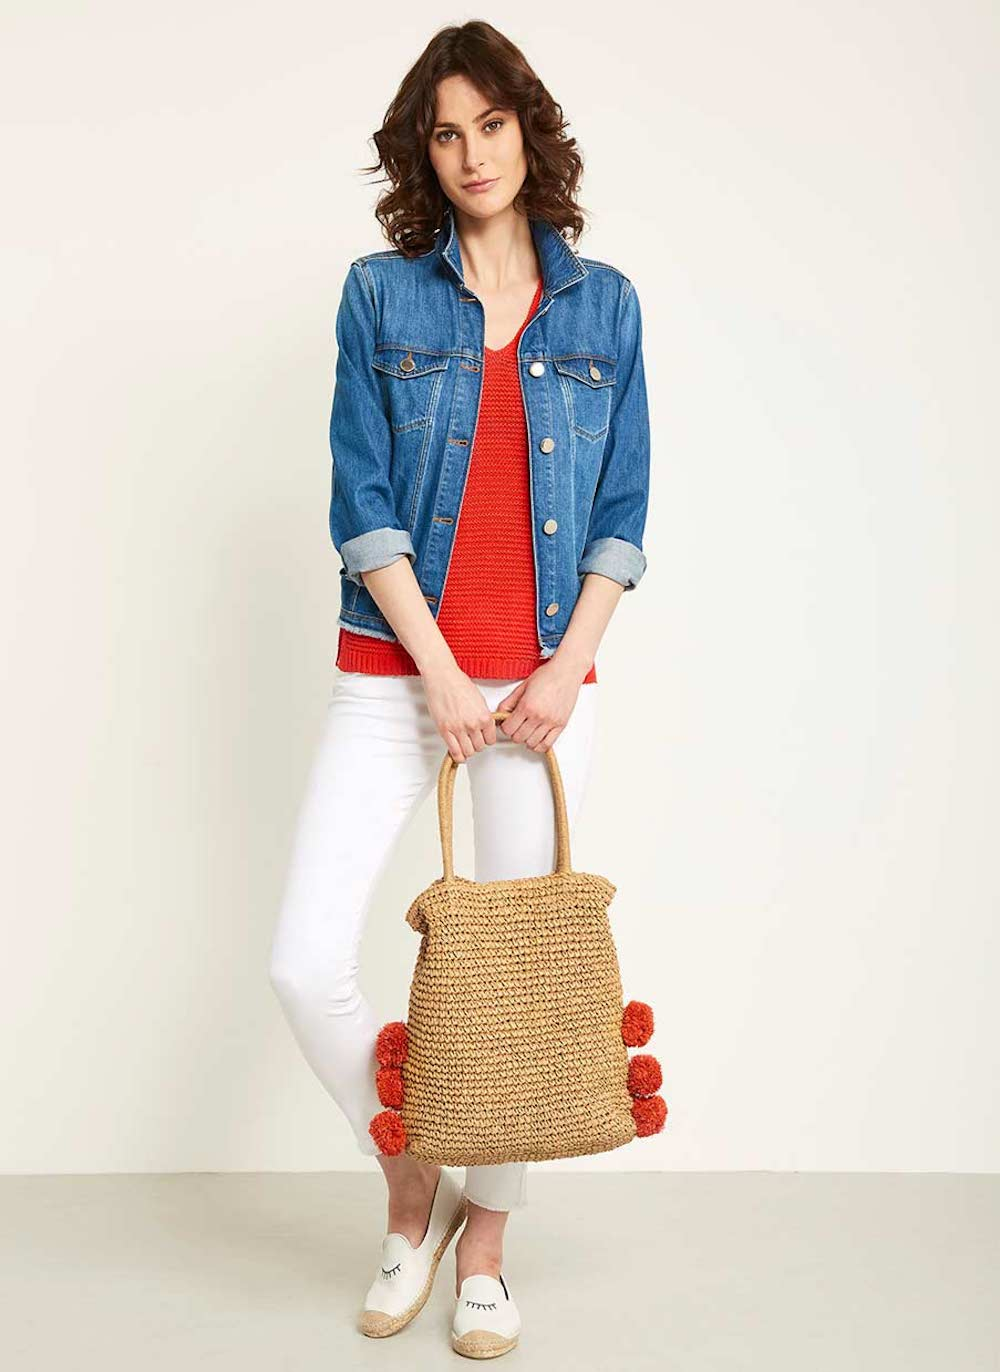 woman in white jeans denim shirt red top and tan bag